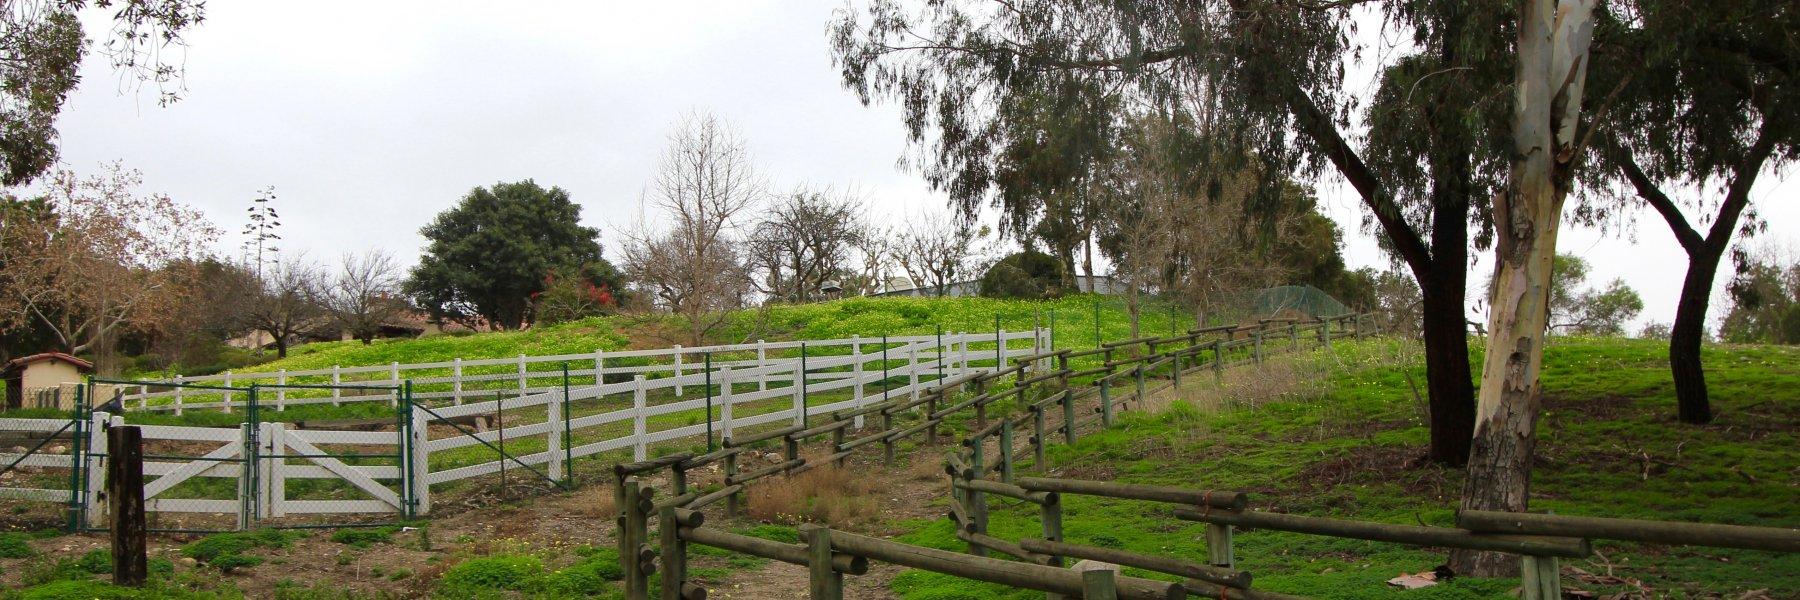 Mission Hills Ranch is a community of homes in San Juan Capistrano California